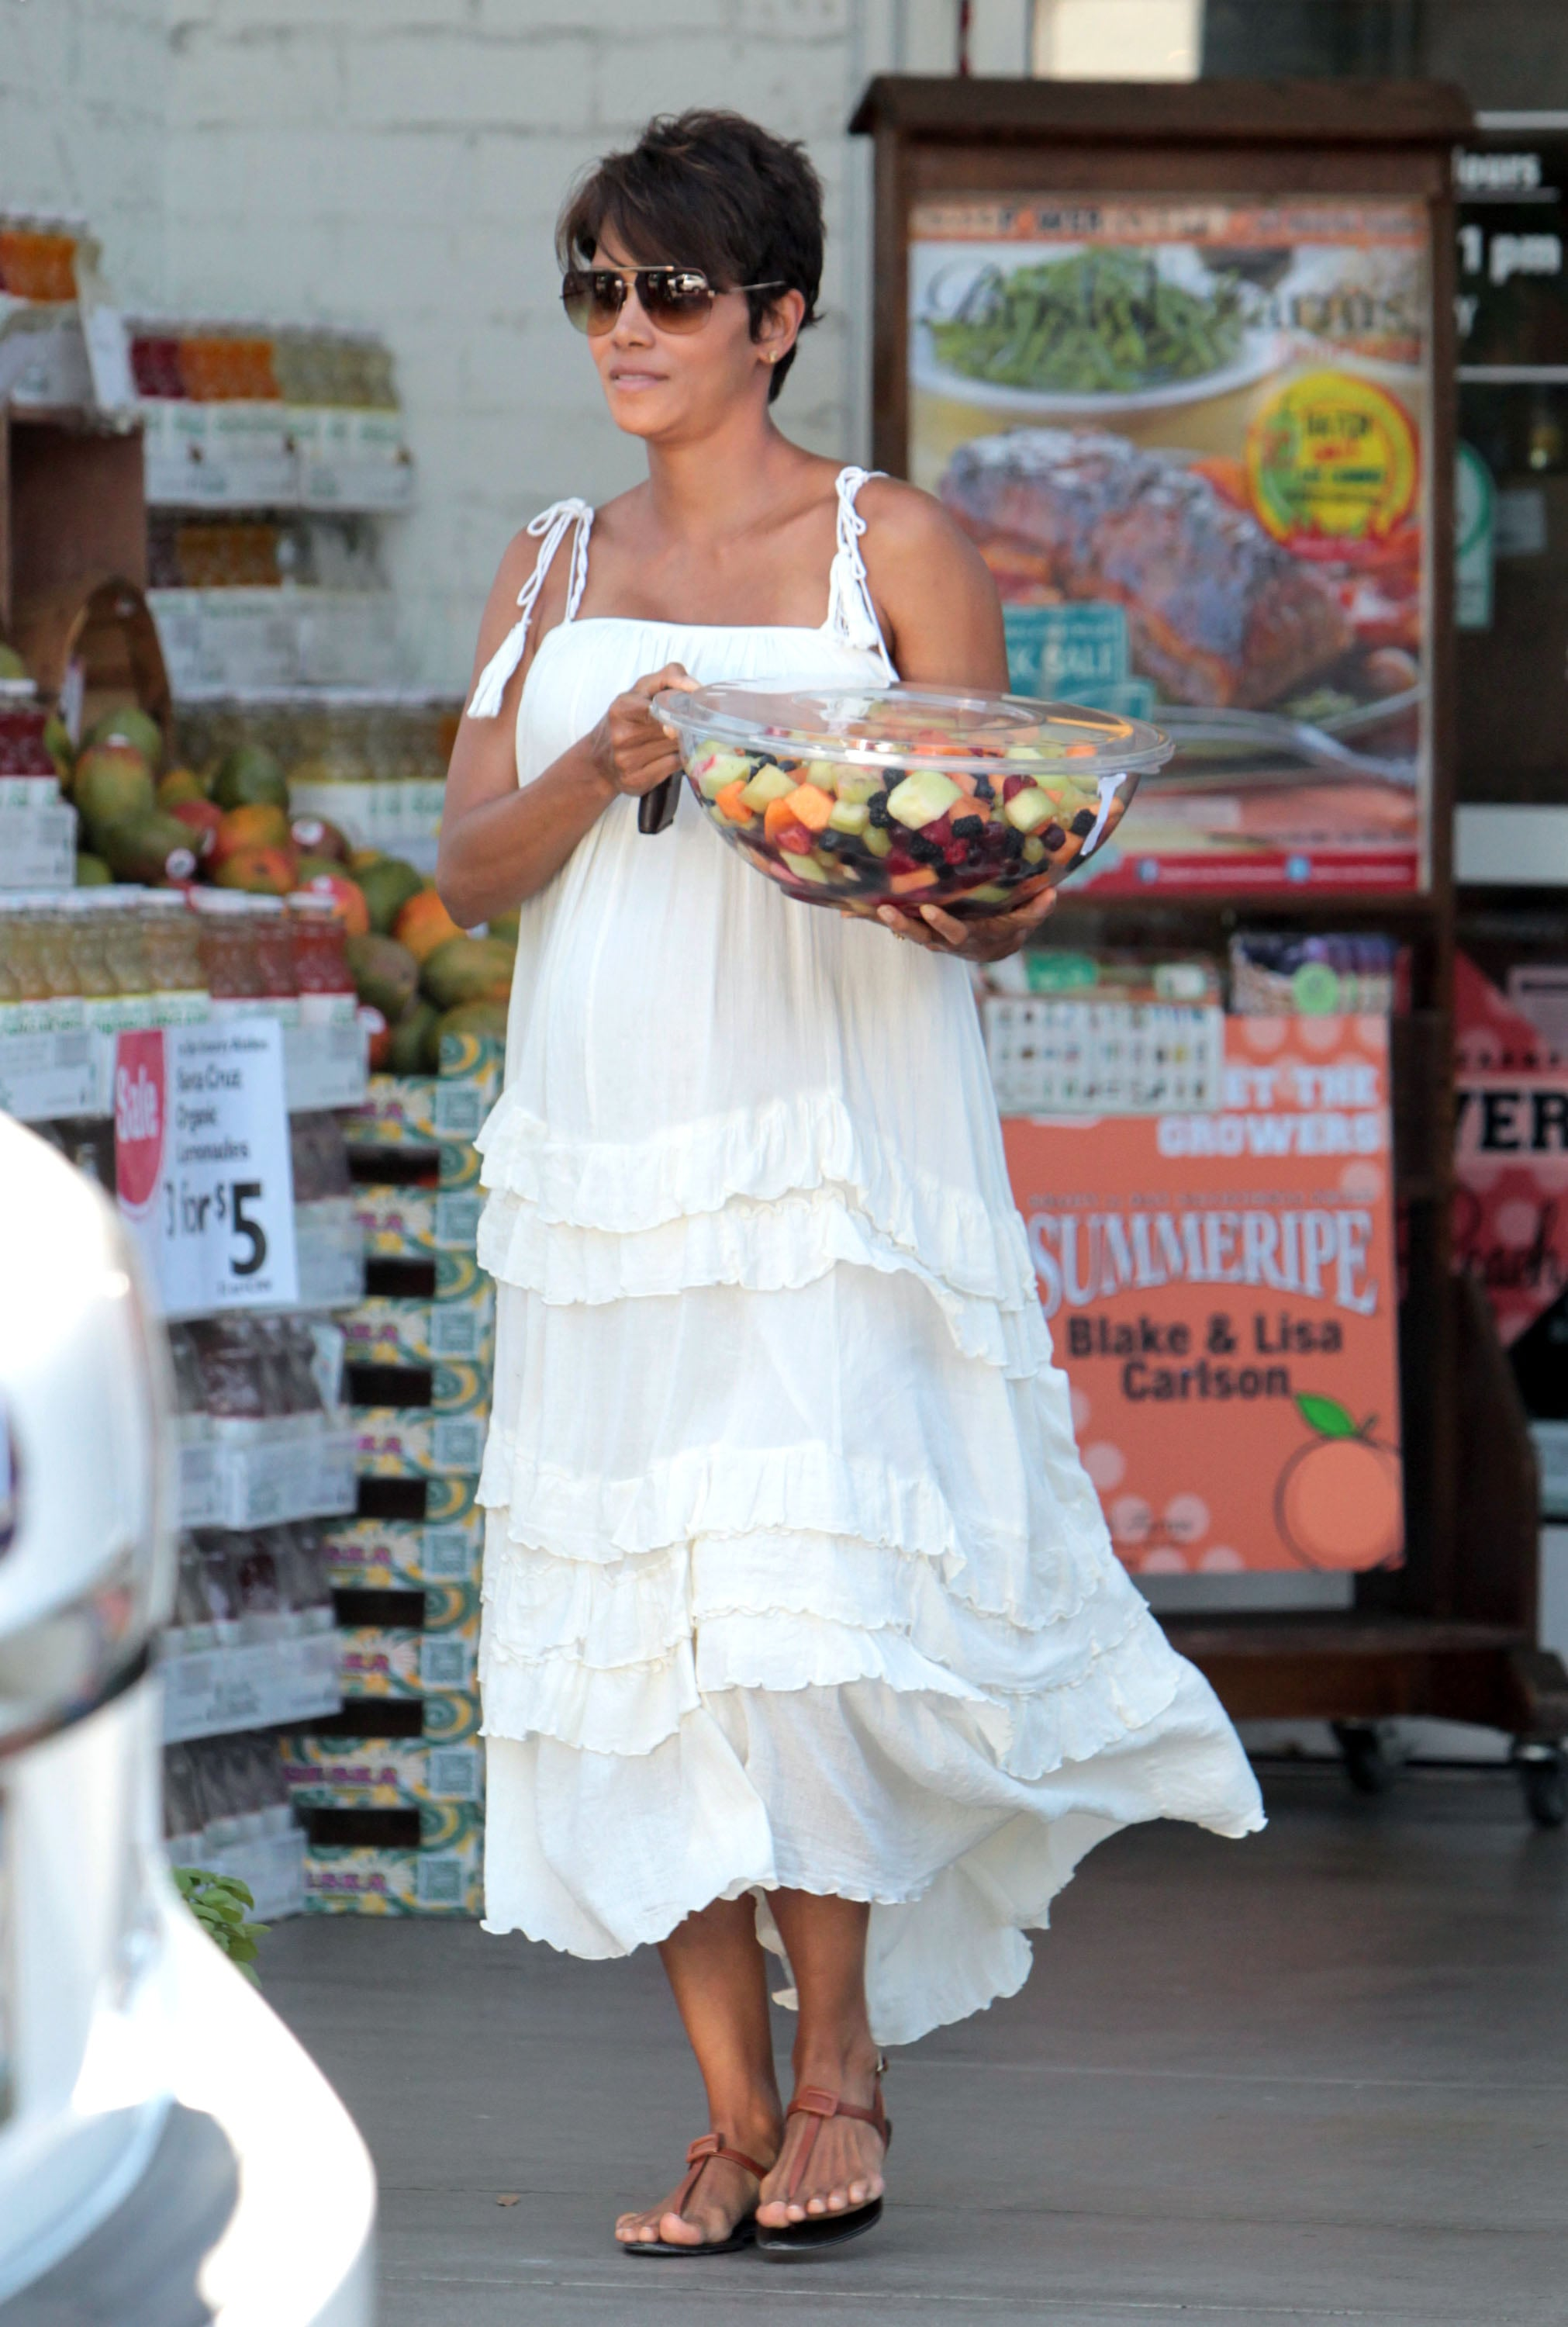 Halle Berry showed off her baby bump in LA.